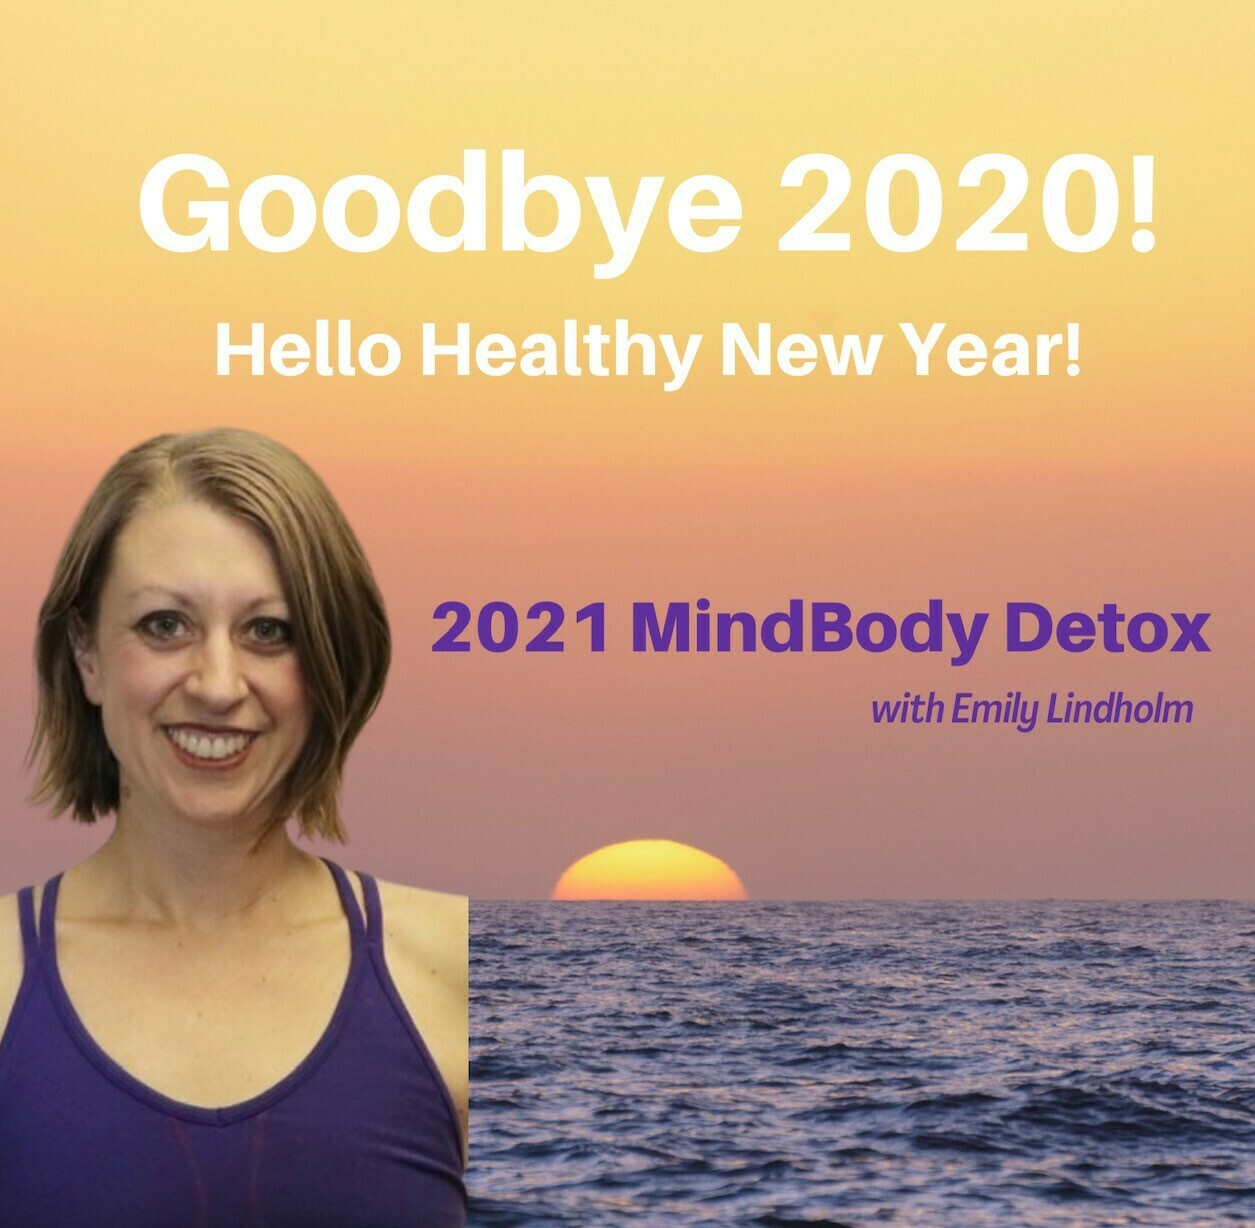 2021 MINDBODY DETOX PROGRAM